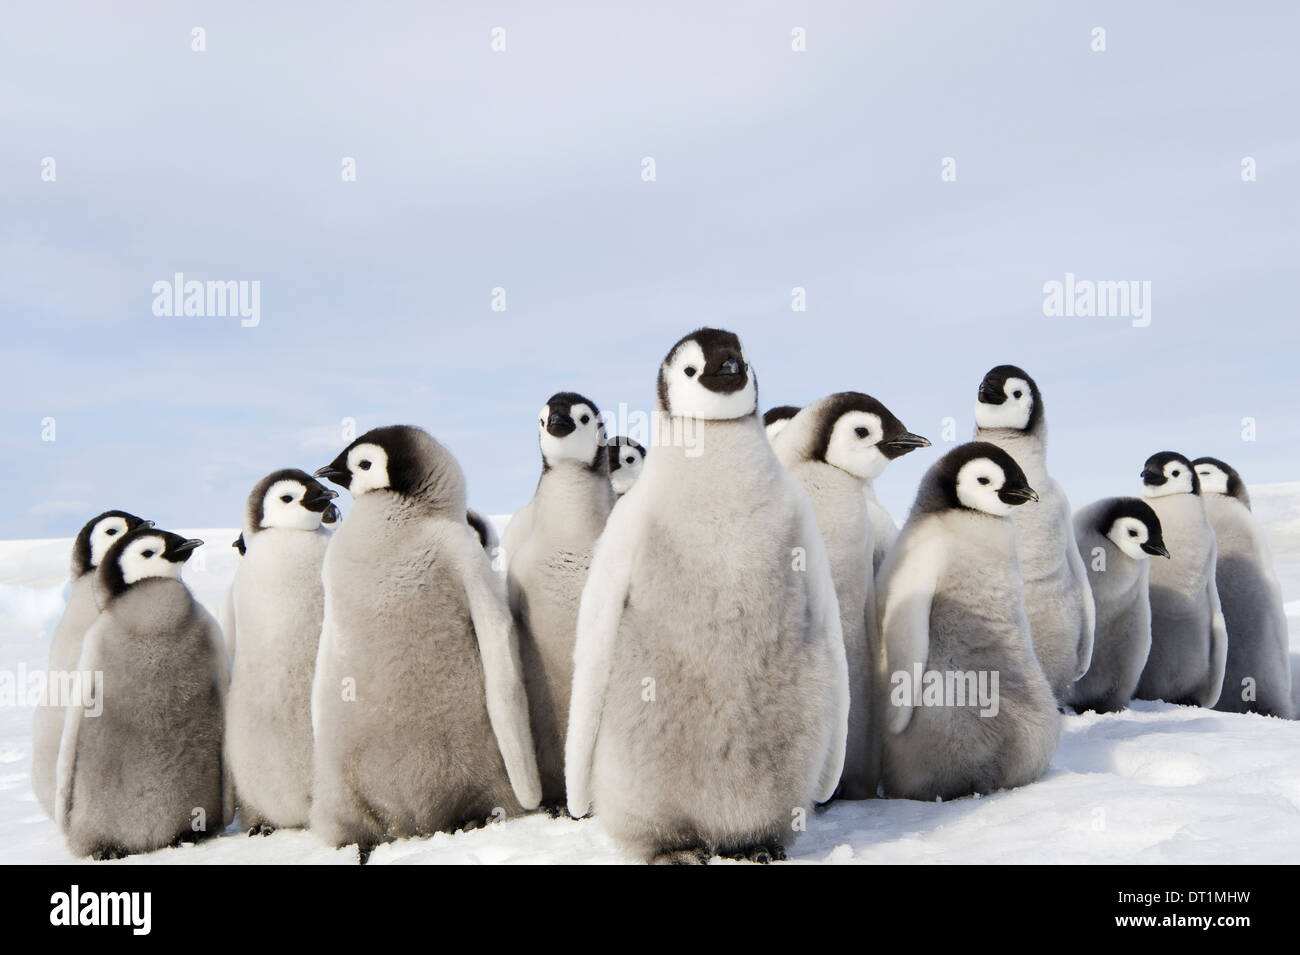 A nursery group of Emperor penguin chicks huddled together looking around A breeding colony - Stock Image